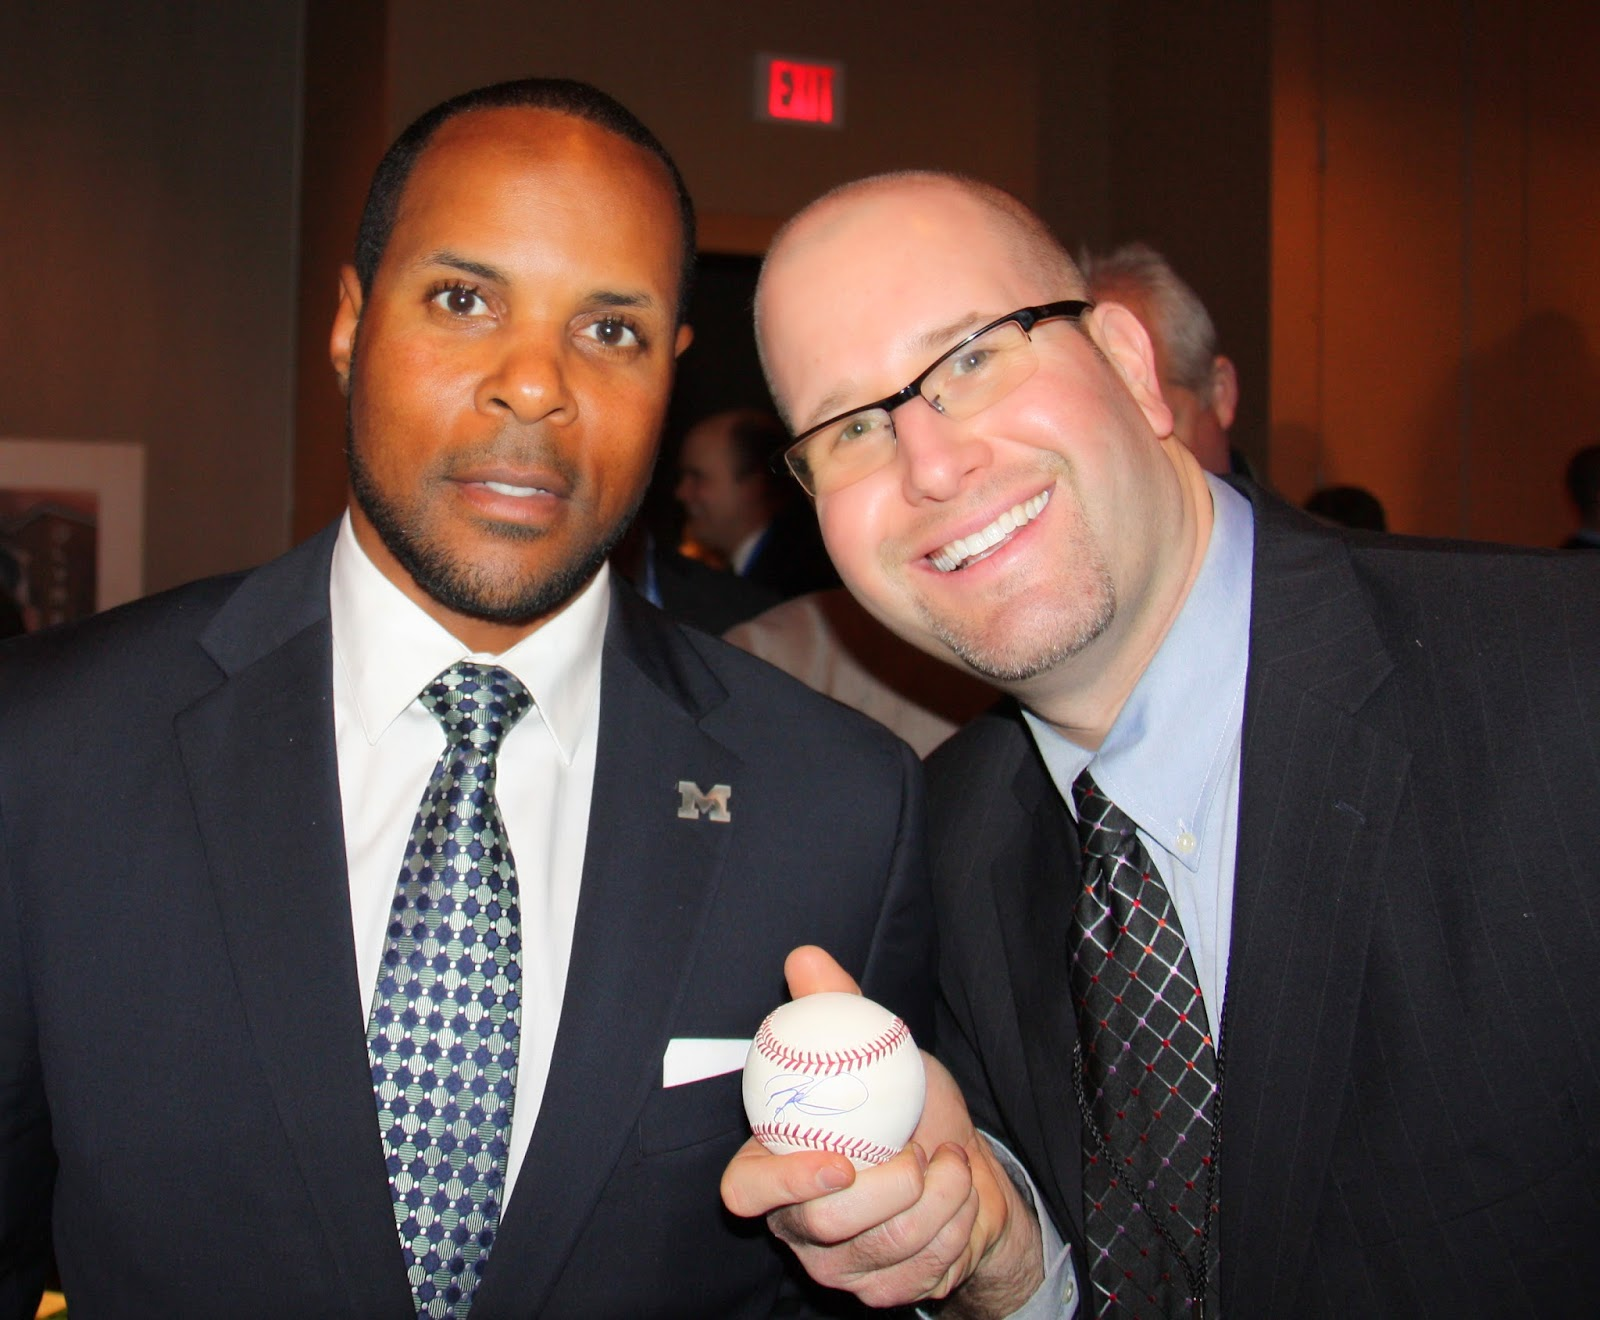 Rabbi Jason Miller and Baseball Hall of Fame Shortstop Barry Larkin